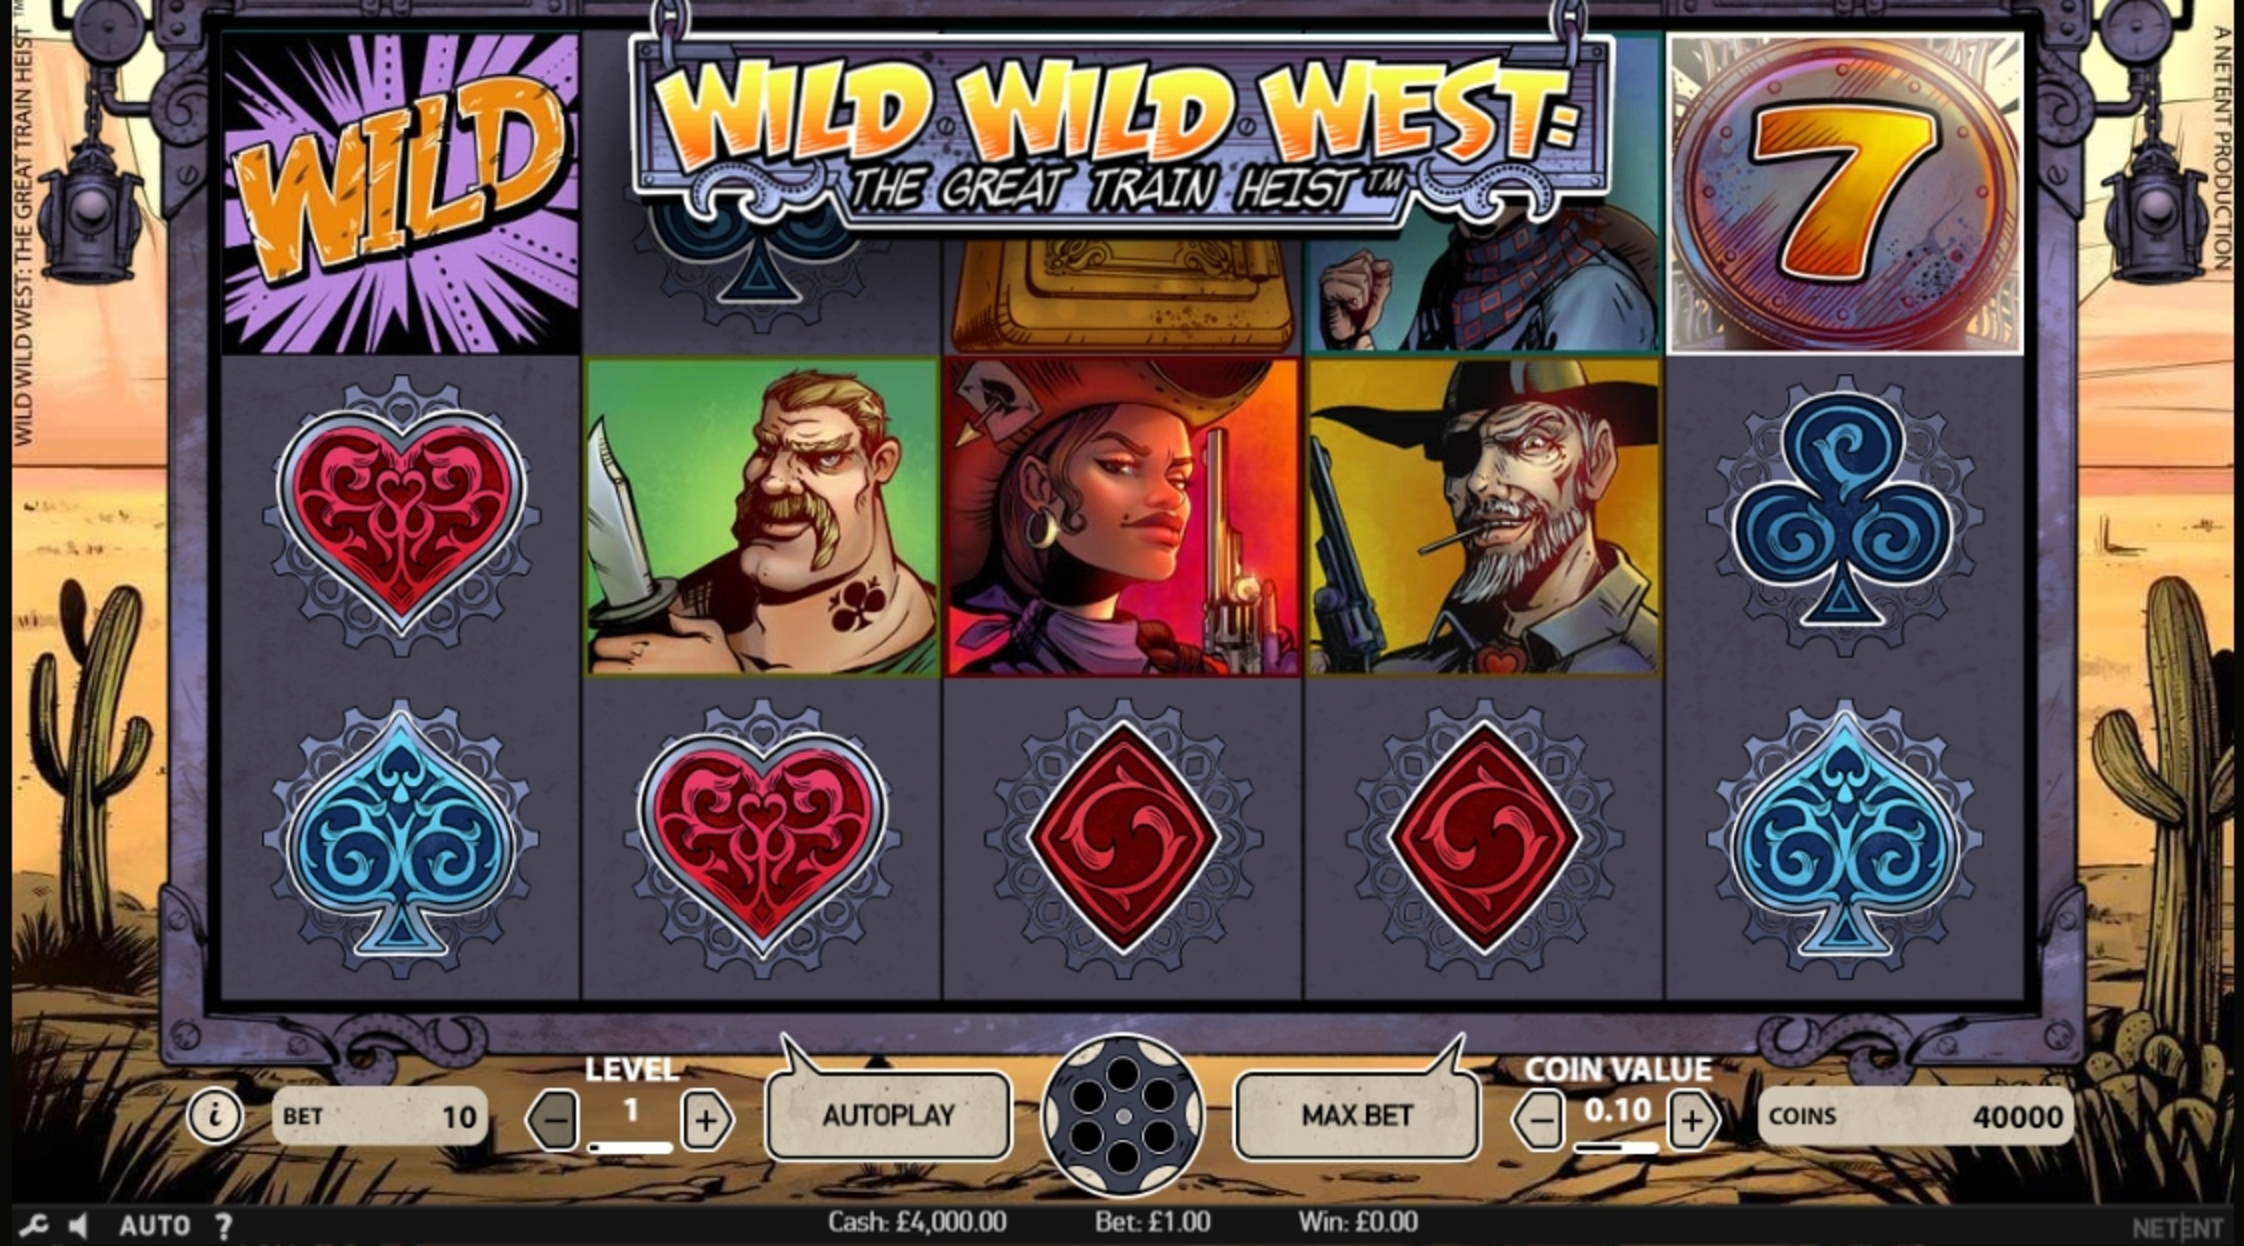 Reels in Wild Wild West Slot Game by NetEnt